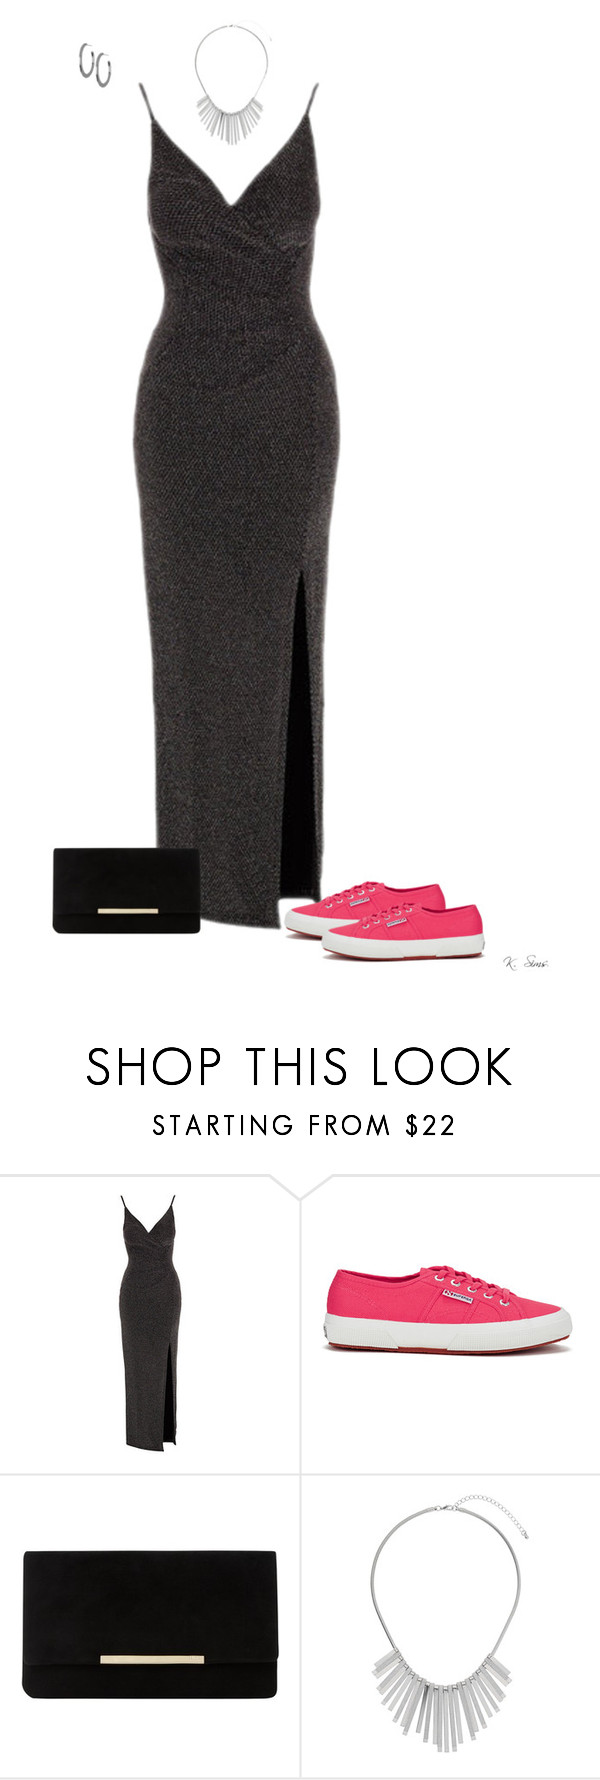 """""""Macy Gray inspired"""" by ksims-1 ❤ liked on Polyvore featuring Lipsy, Superga, Dune, Dorothy Perkins and Argento Vivo"""